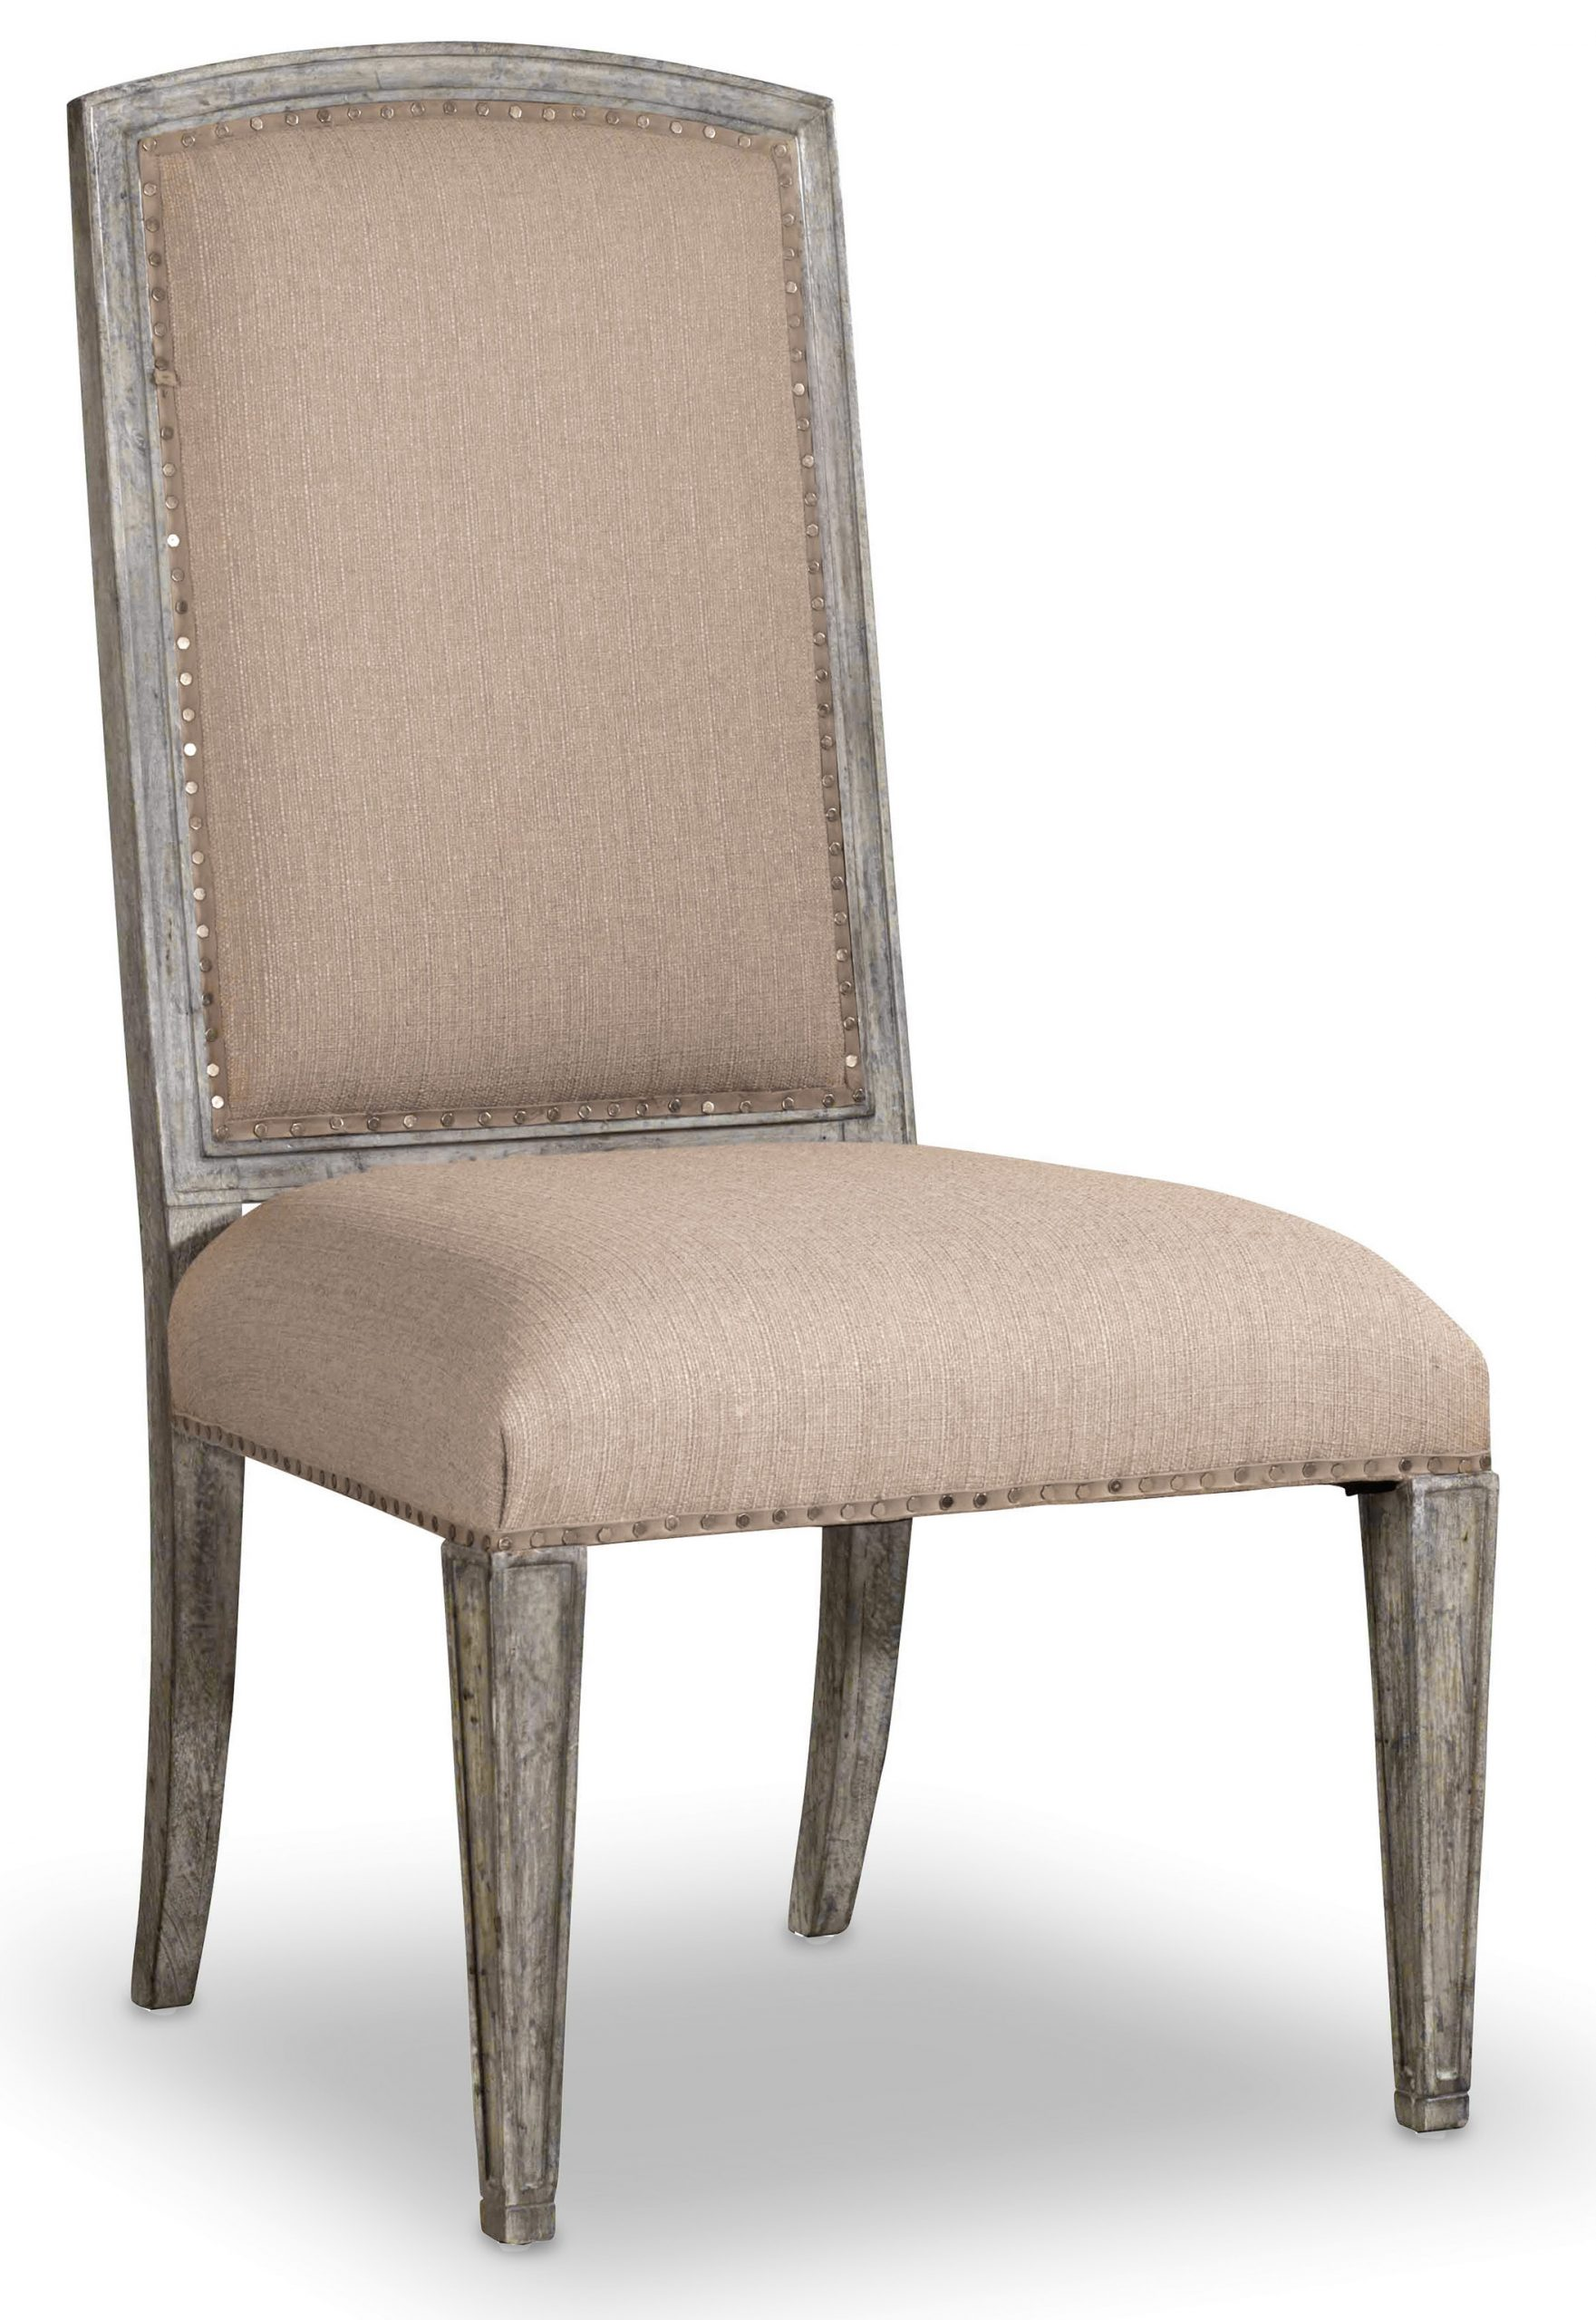 True Vintage Upholstered Side Chair - 2 per carton/price ea